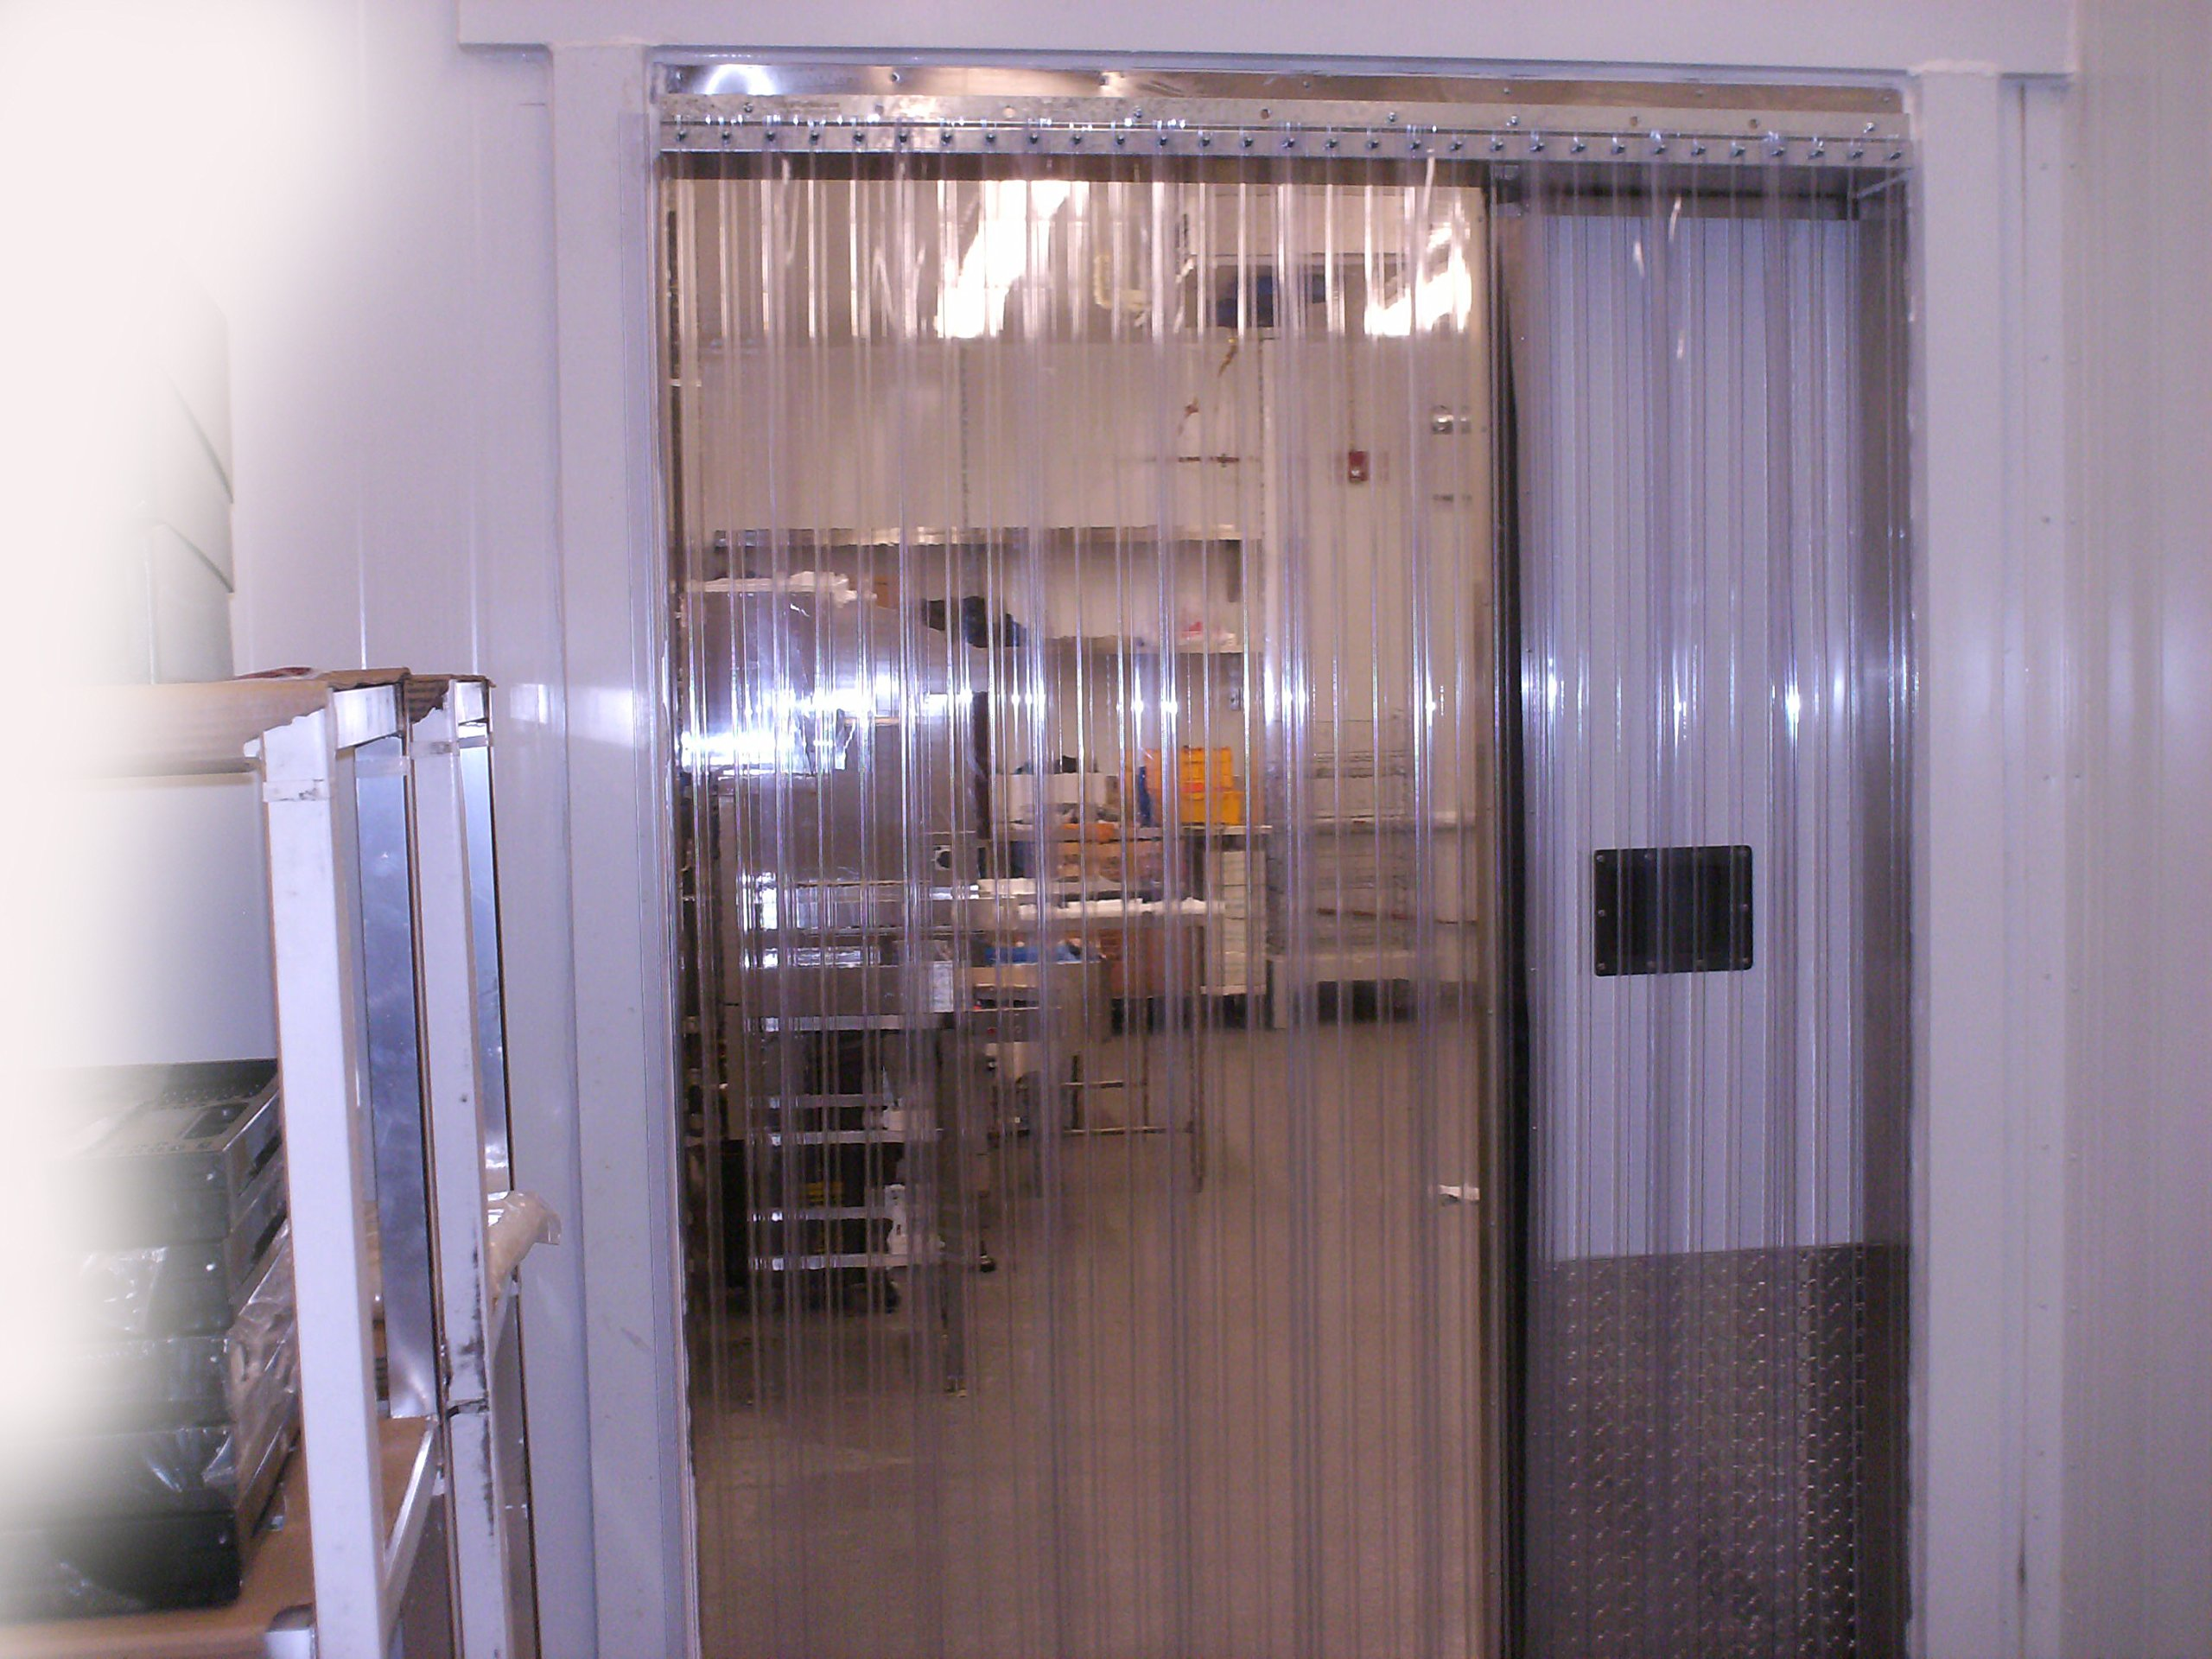 Stainless Steel Hardware 36 in. Width X 84 in. Green Opaque 8 in 7 ft 3 ft Height Strip-Curtains.com: Strip Door Curtain Strips with 50/% Overlap